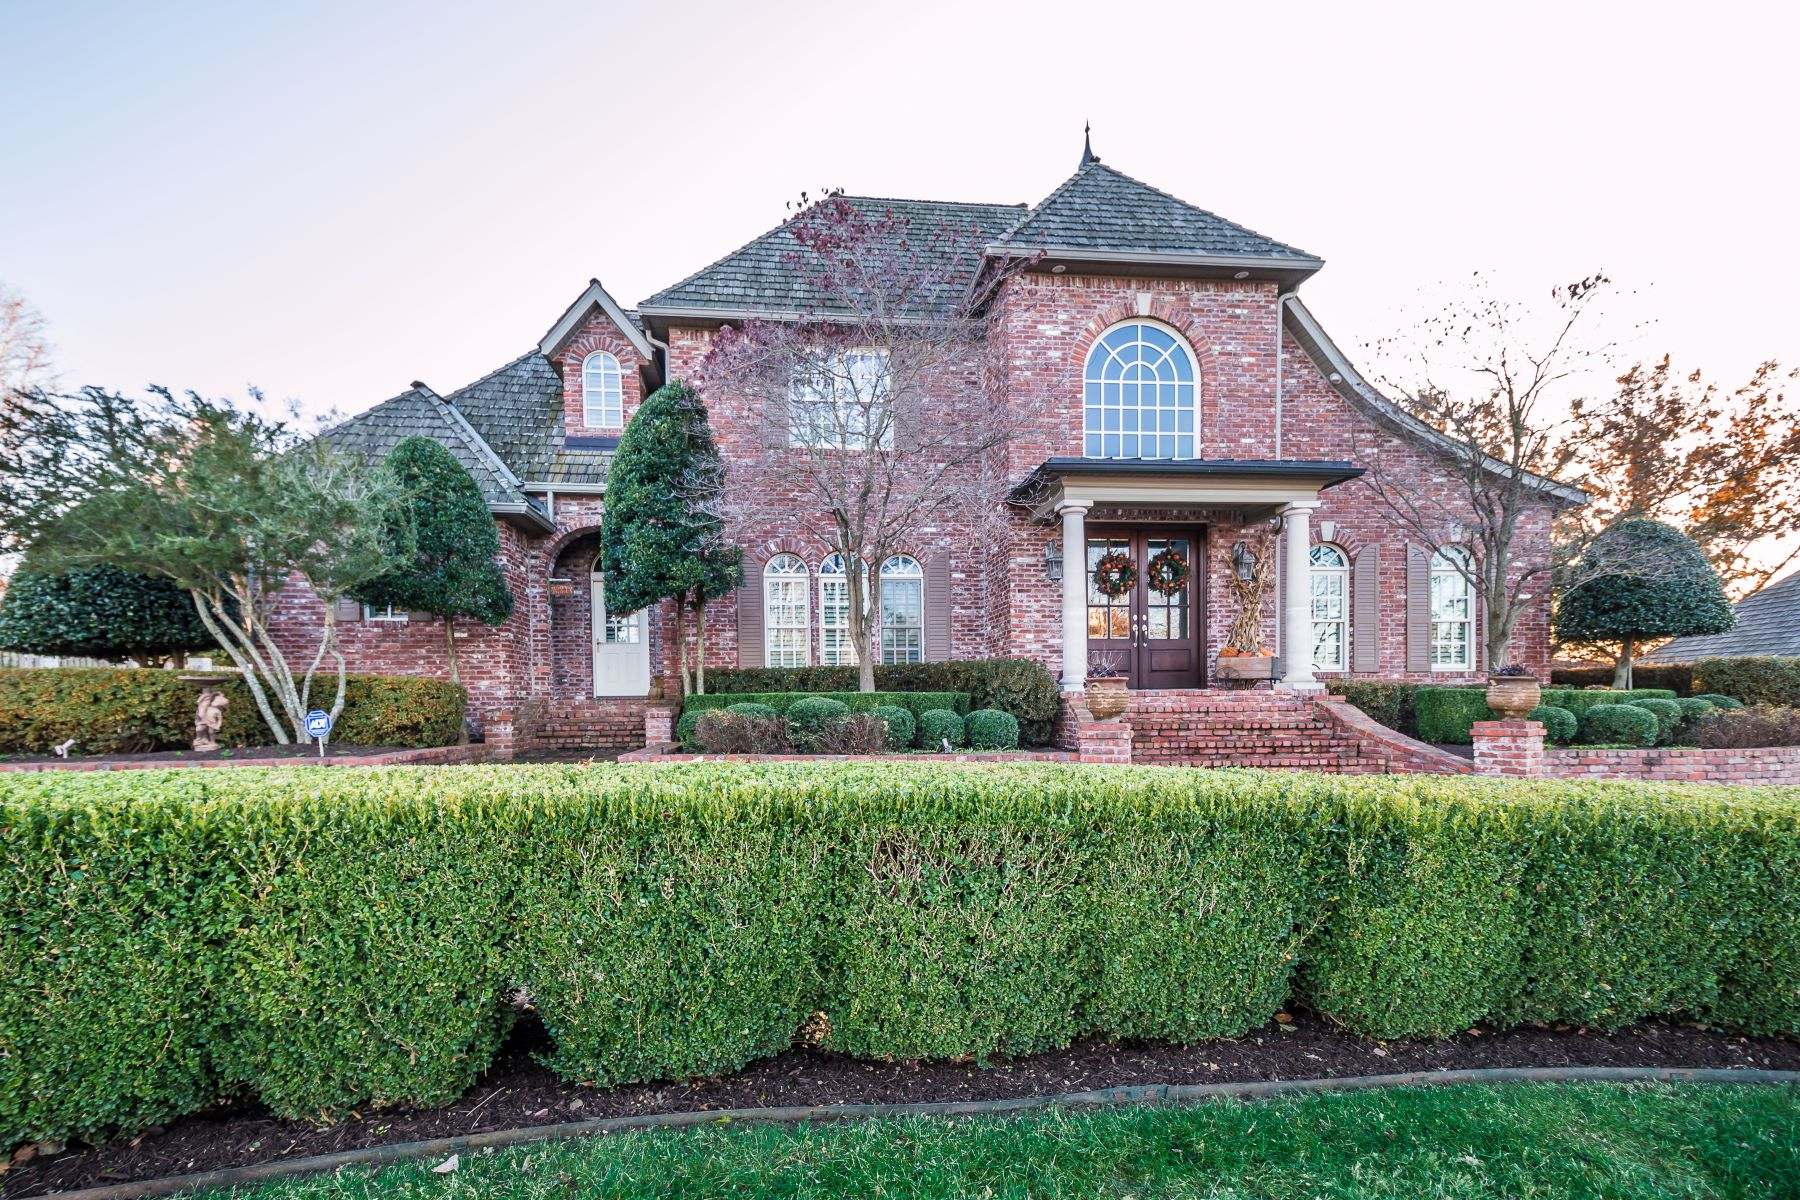 Single Family Homes for Sale at 4 S Mission Hills Circle 4 Mission Hills Circle Rogers, Arkansas 72758 United States